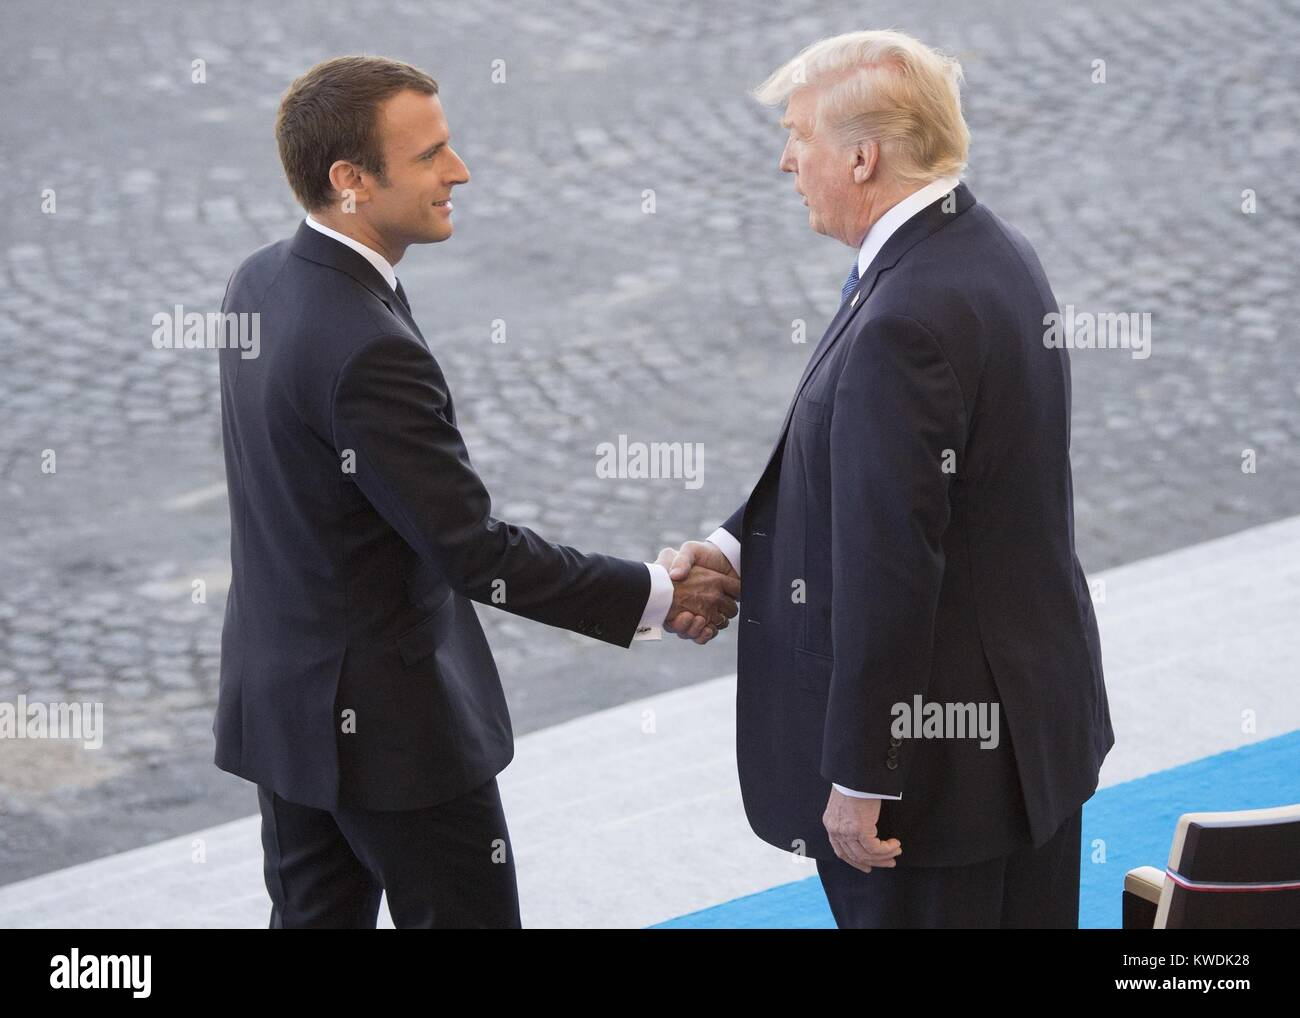 French President Emmanuel Macron welcomes President Donald Trump to the Bastille Day parade in Paris. July 14, 2017 Stock Photo